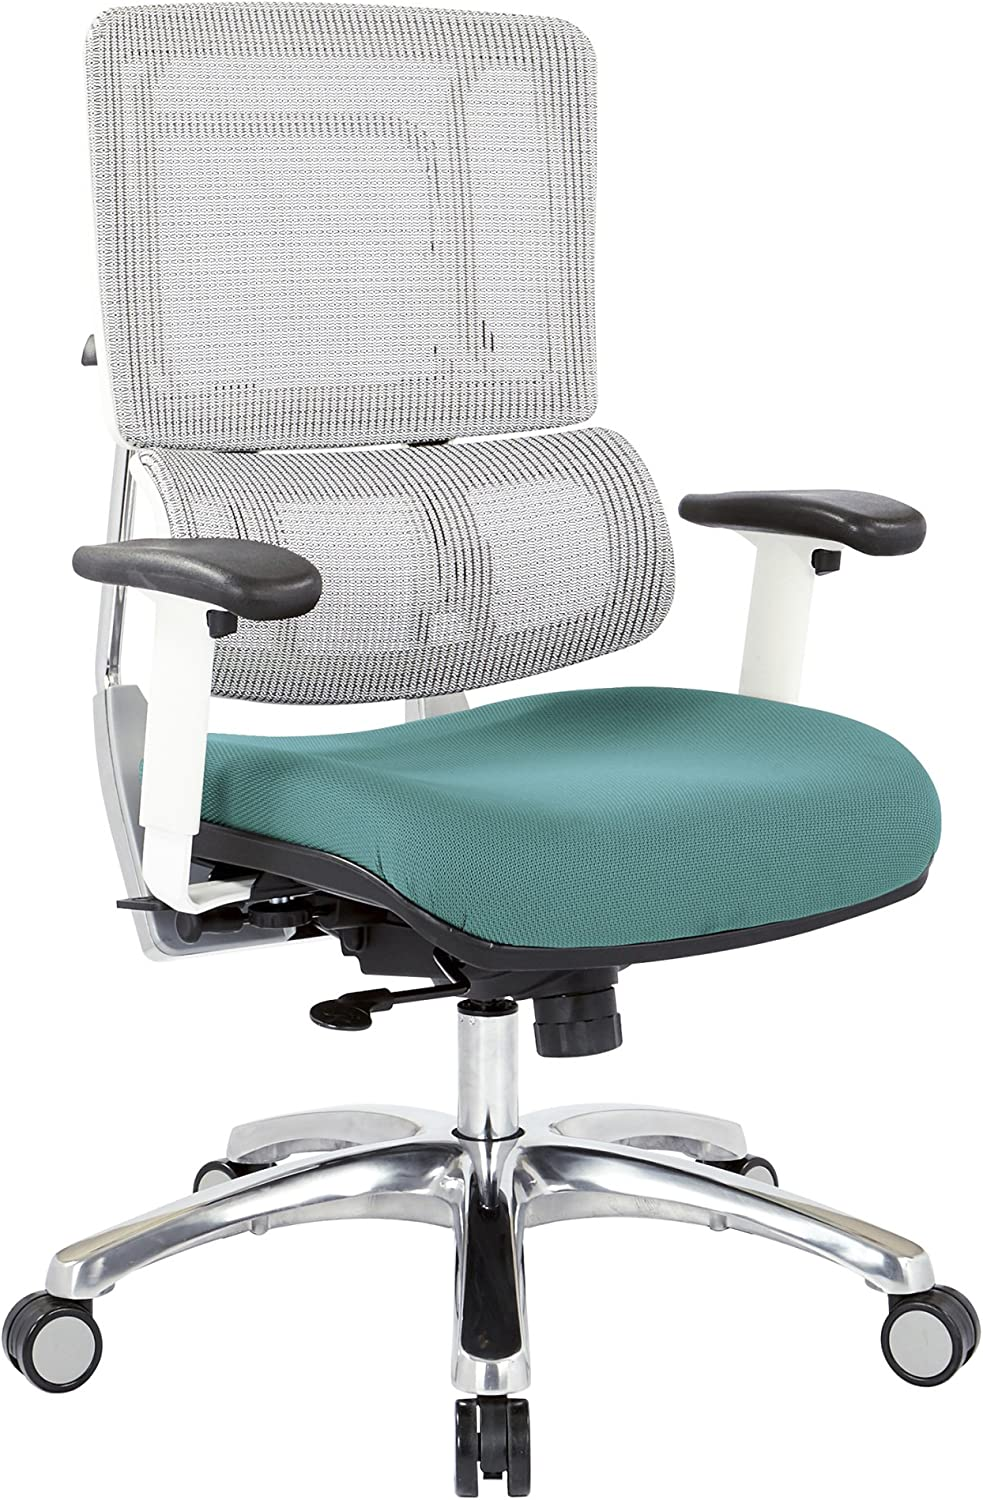 Office Star Breathable White Vertical Mesh Back and Padded Steel Mesh Seat Managers Chair with Adjustable Arms and Polished Aluminum Accents, Blue Seat